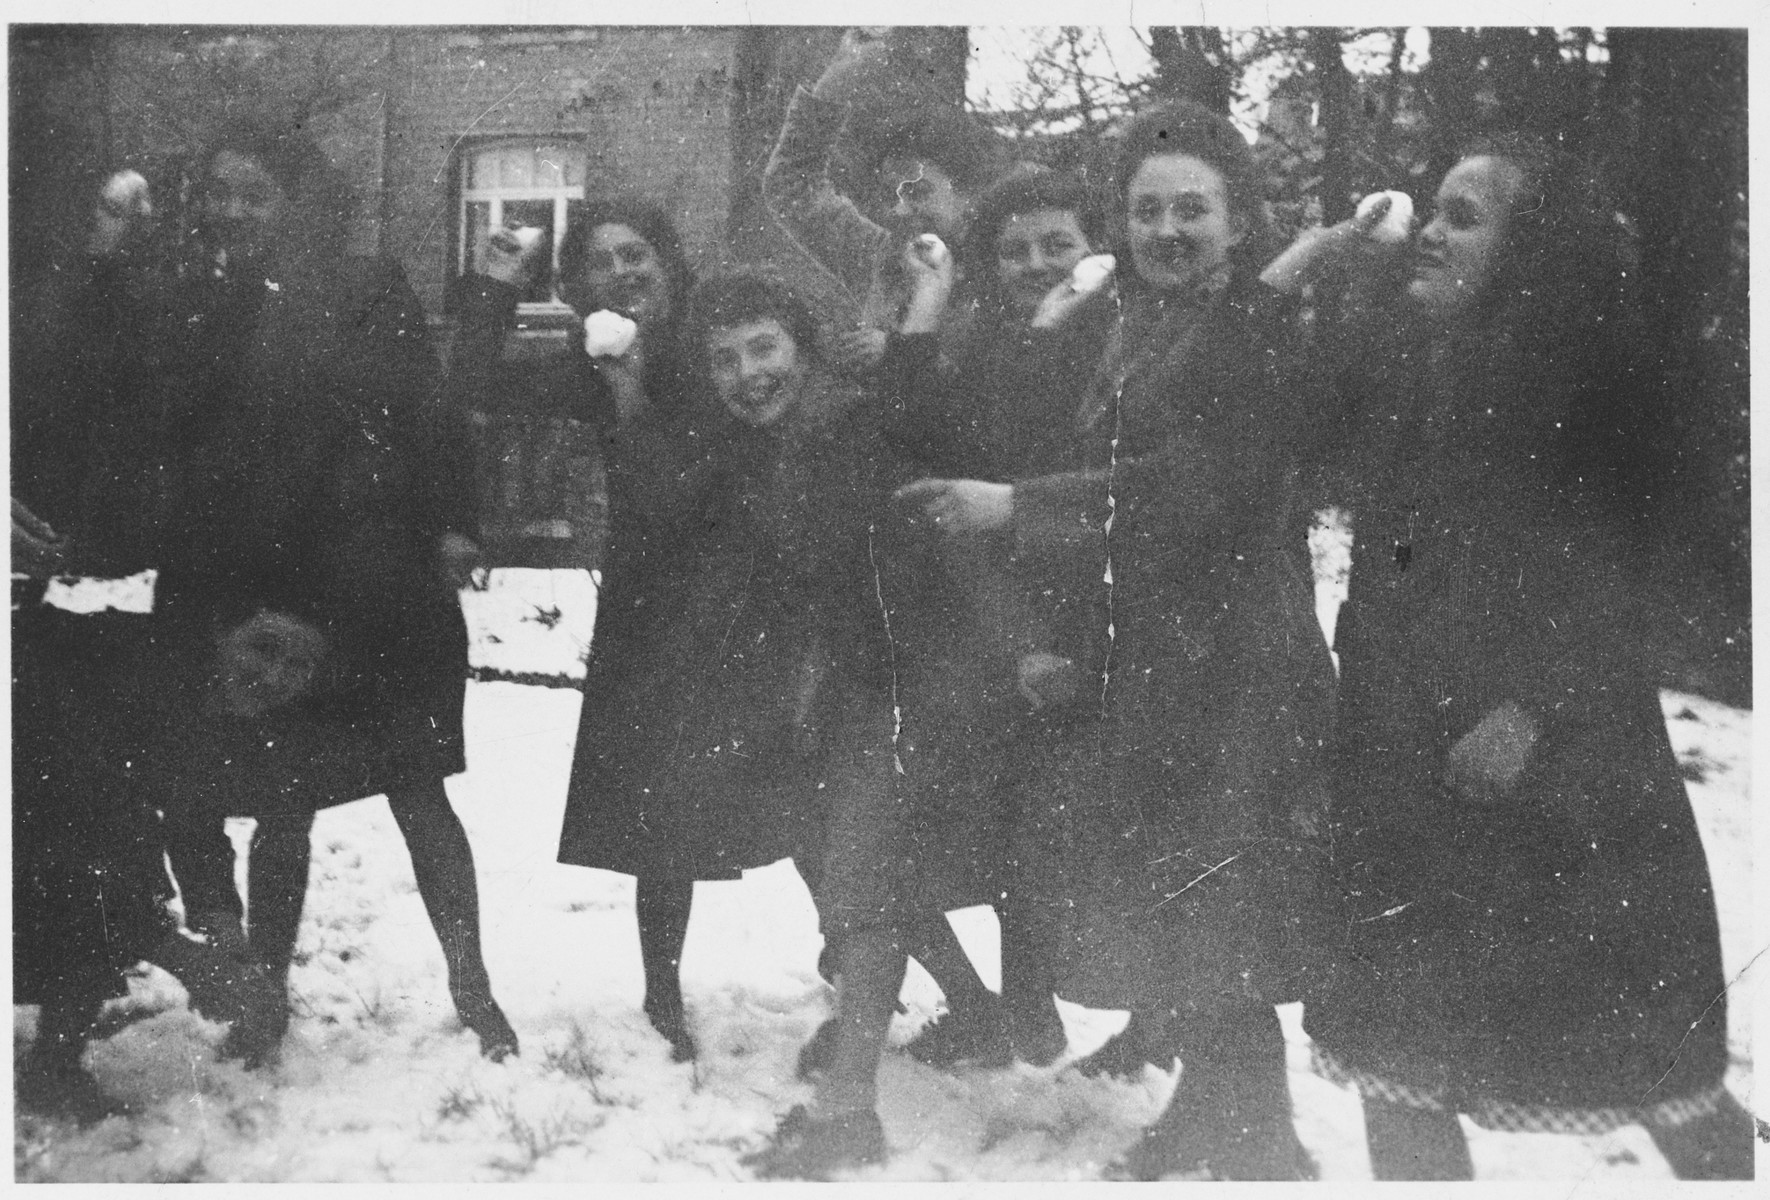 A group of Jewish girls who are living in hiding in Belgium, play in the snow.